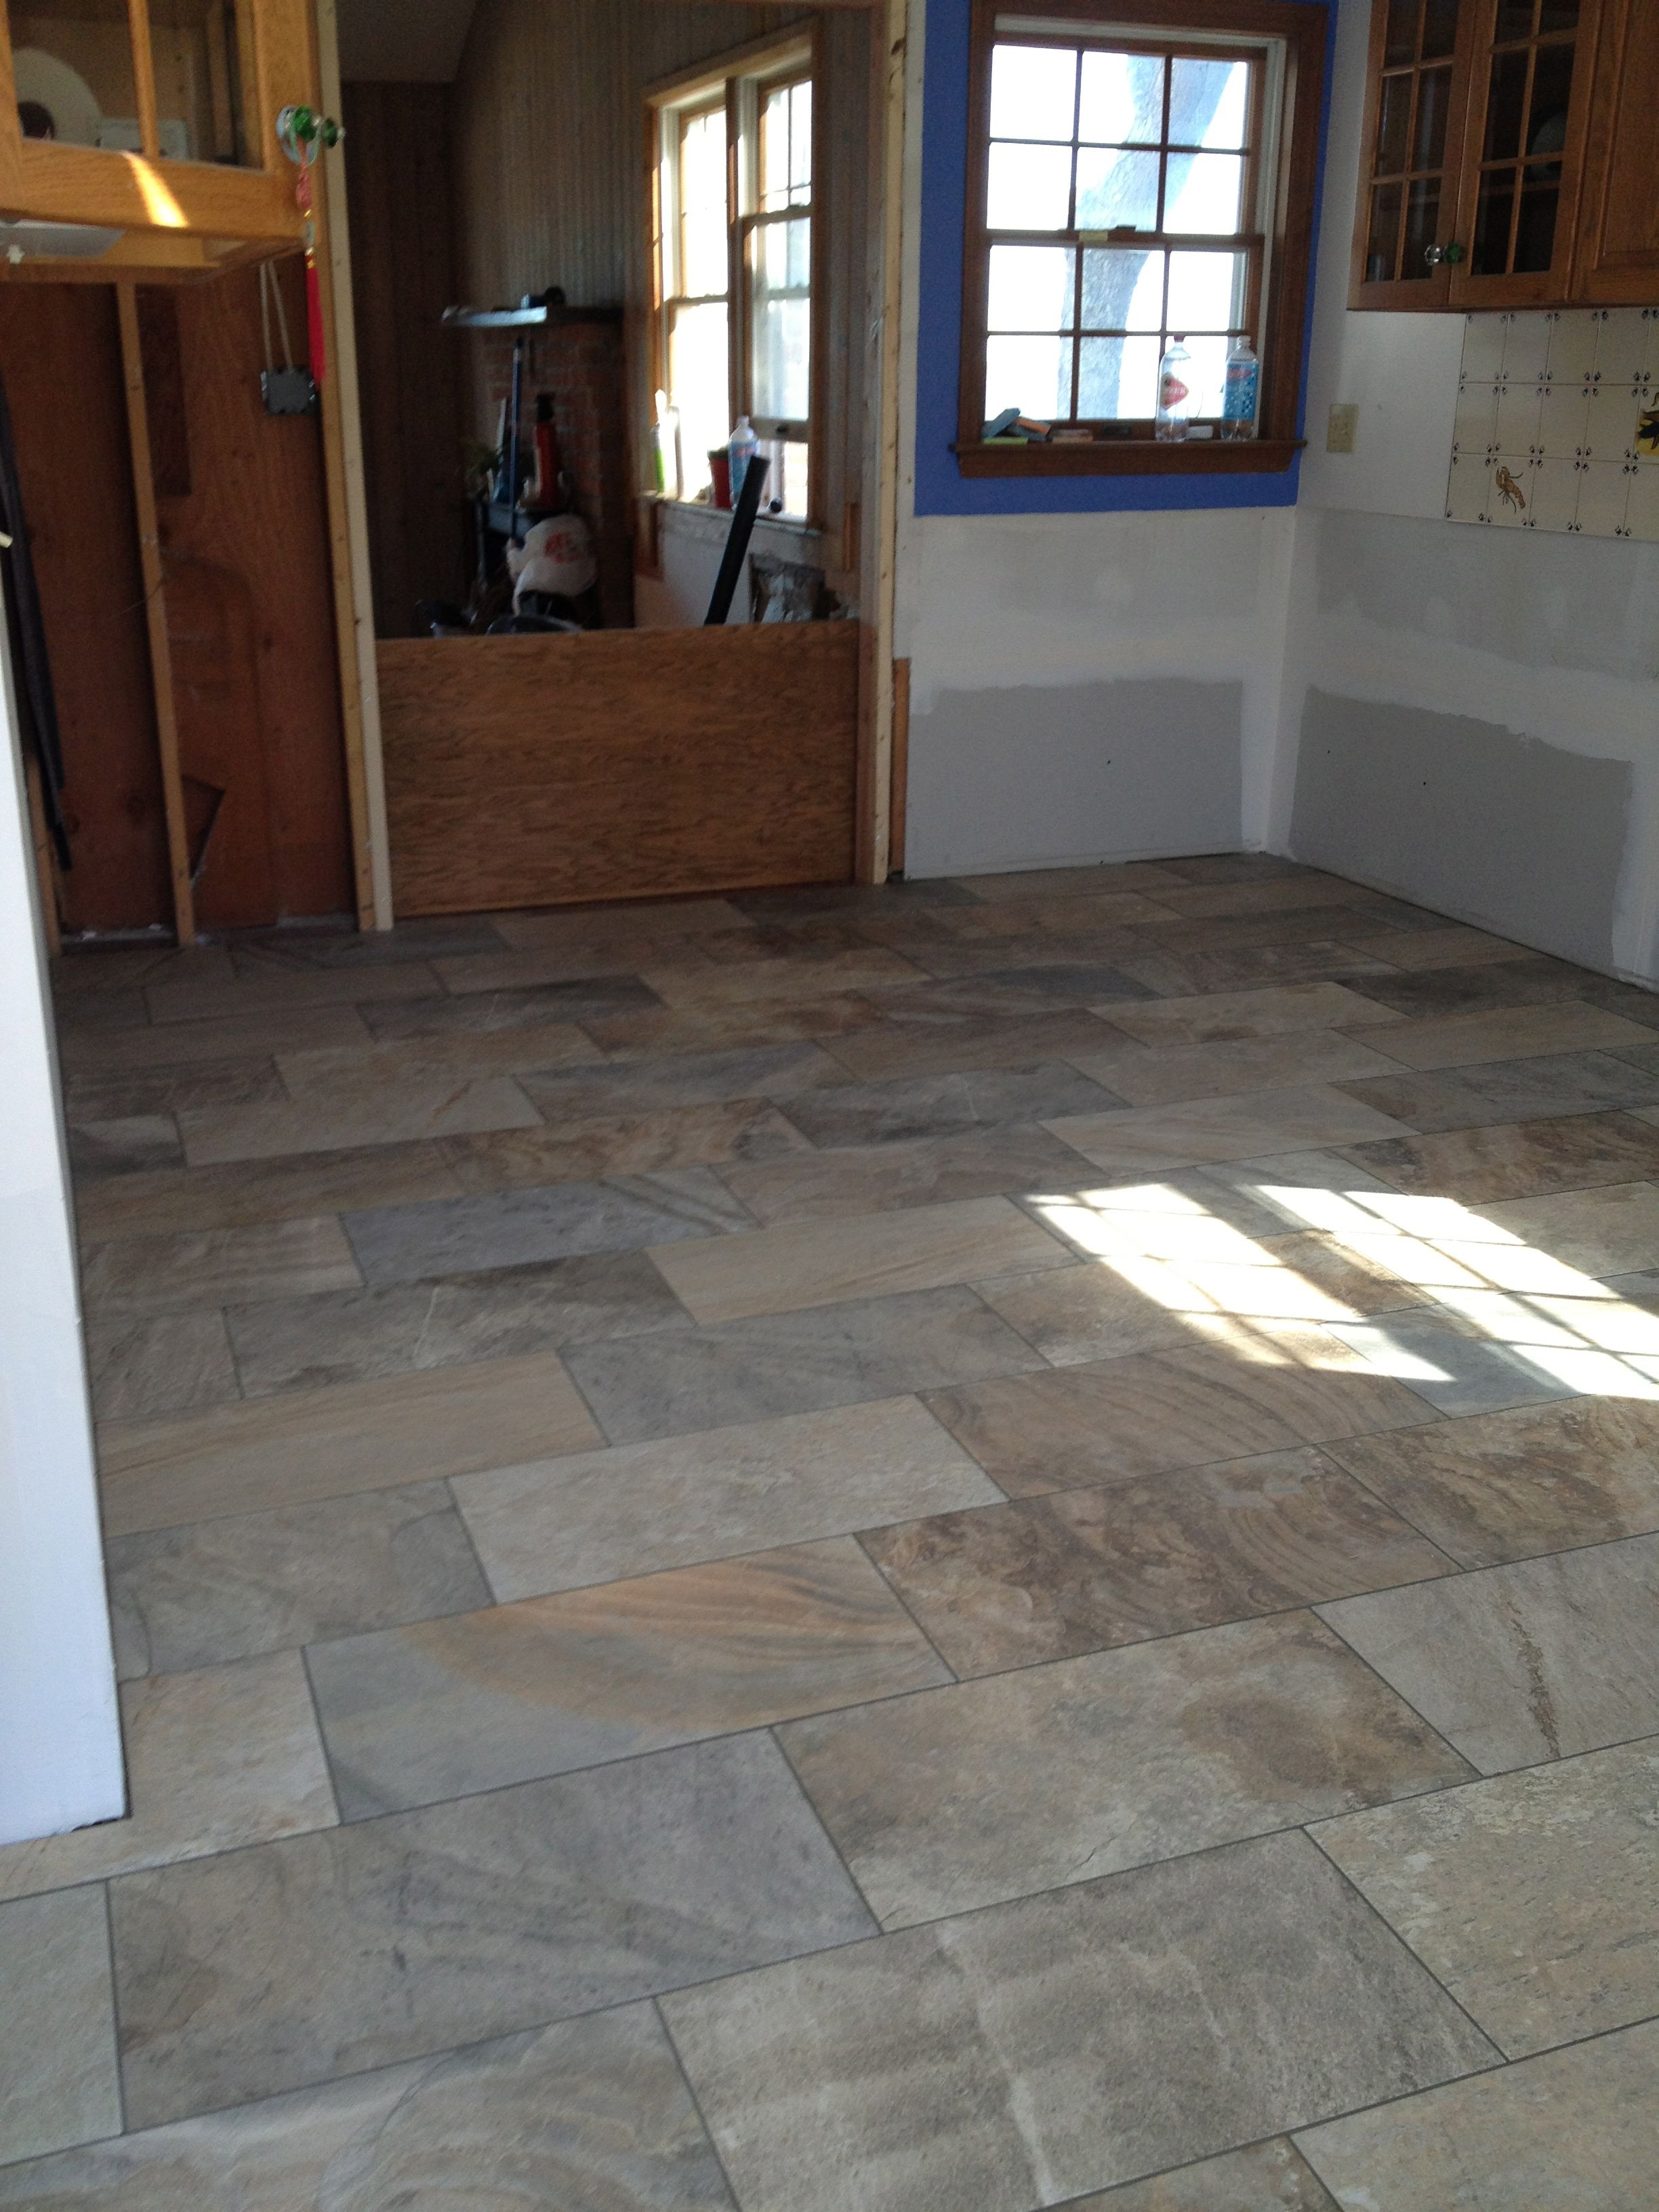 Beautiful tile that id recommend solar by fine color earth beautiful tile that id recommend solar by fine color earth obviously still under construction when this was taken but can really see all the dailygadgetfo Choice Image